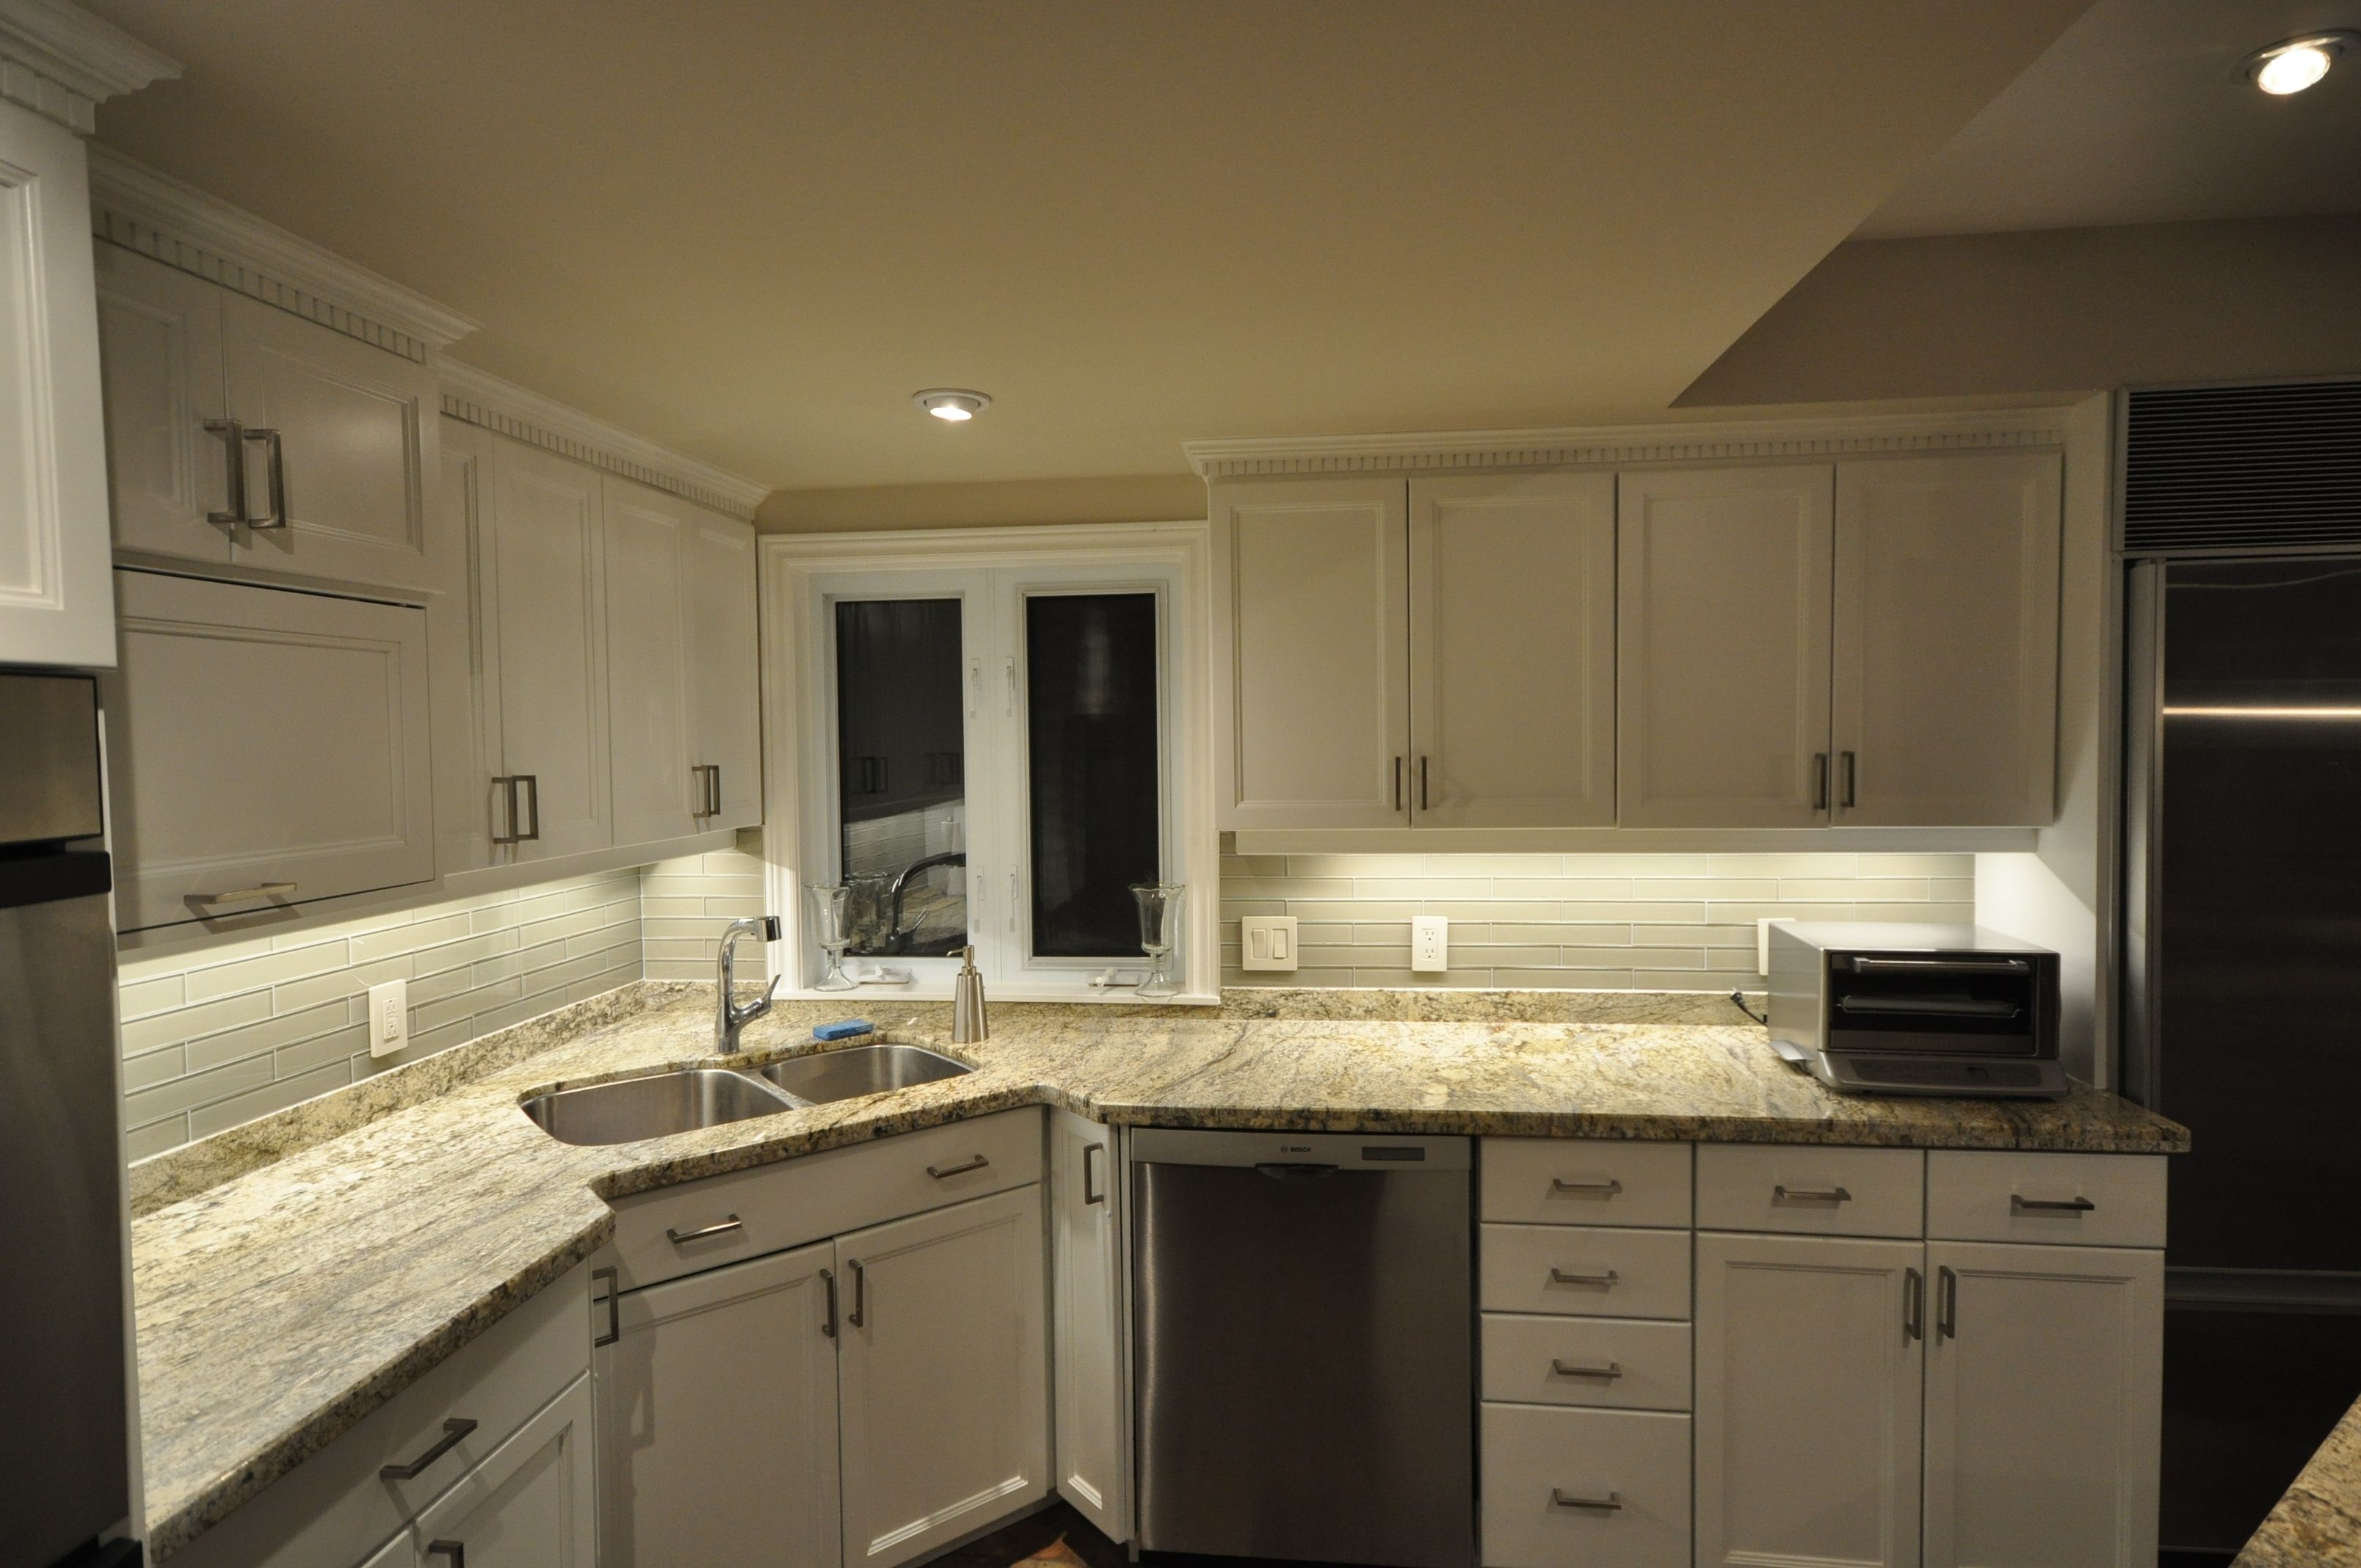 Install Lights Under Kitchen Cabinets How